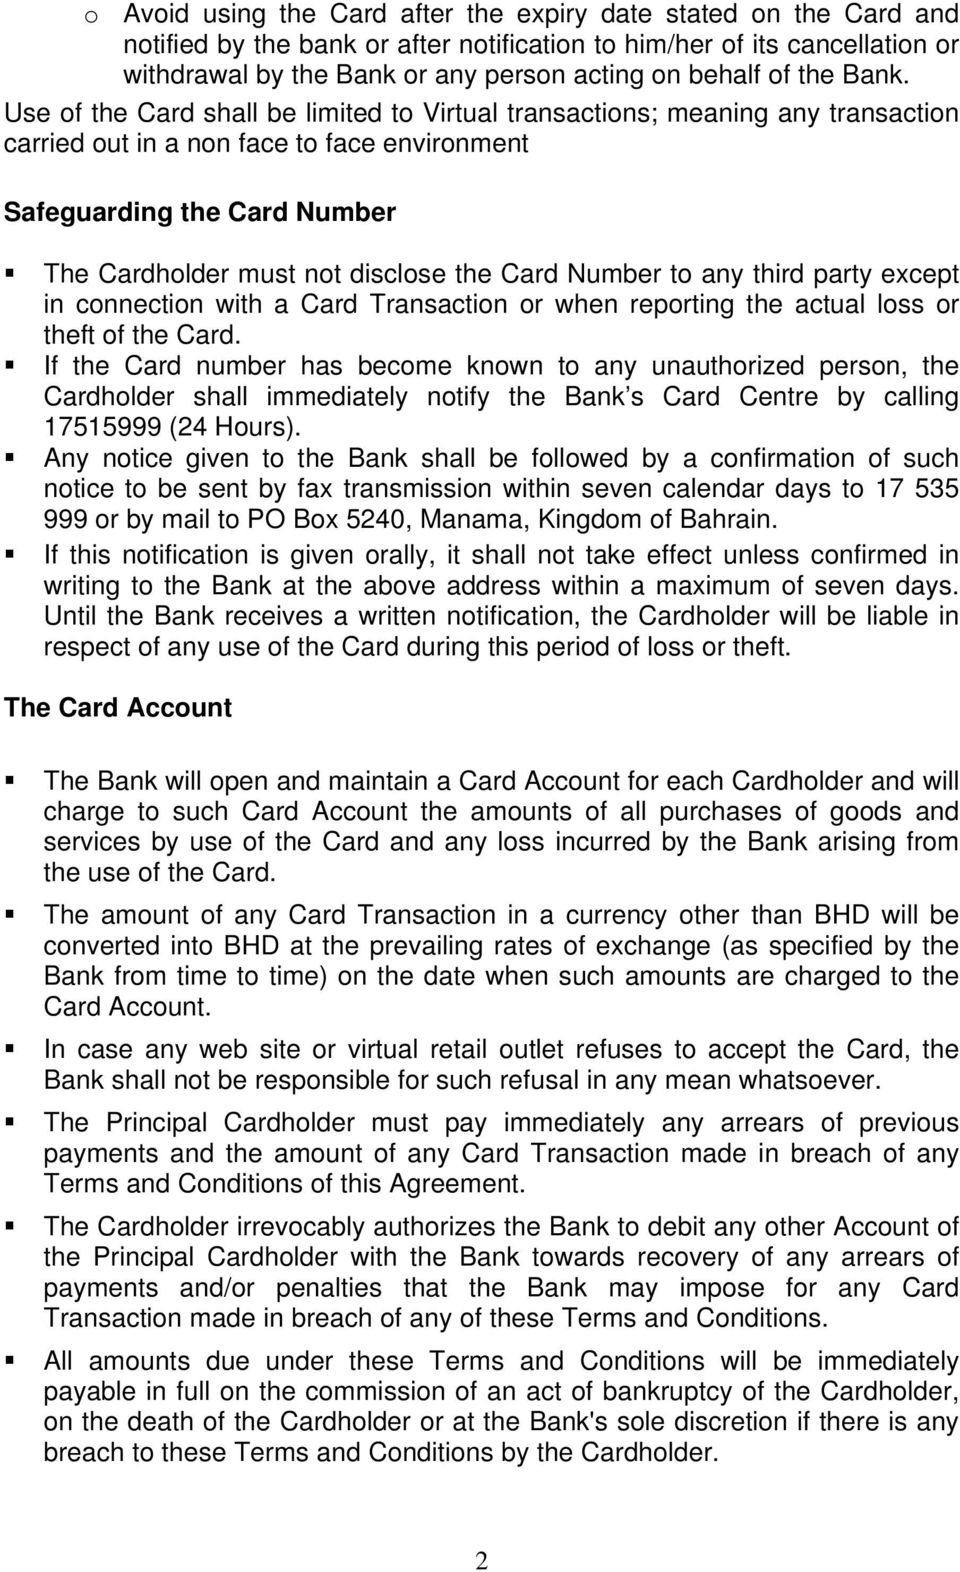 Use of the Card shall be limited to Virtual transactions; meaning any transaction carried out in a non face to face environment Safeguarding the Card Number The Cardholder must not disclose the Card